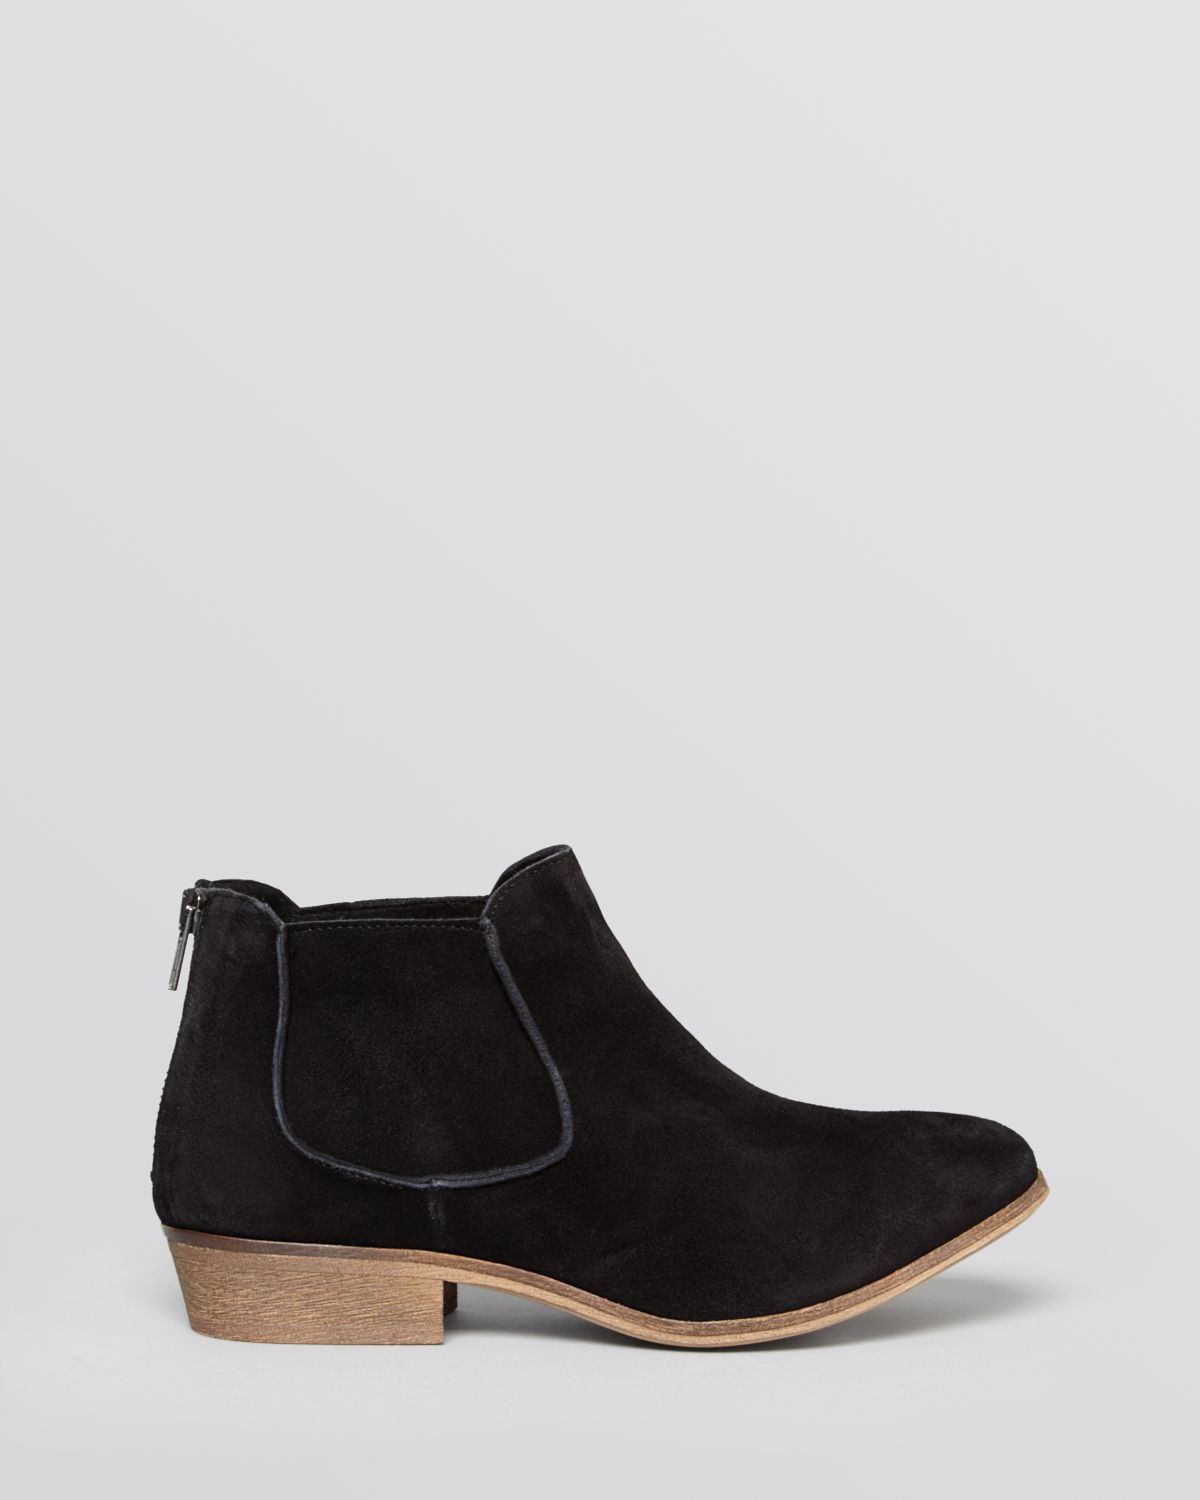 House of Harlow 1960 1960 Flat Booties - Blaire in Navy (Black)